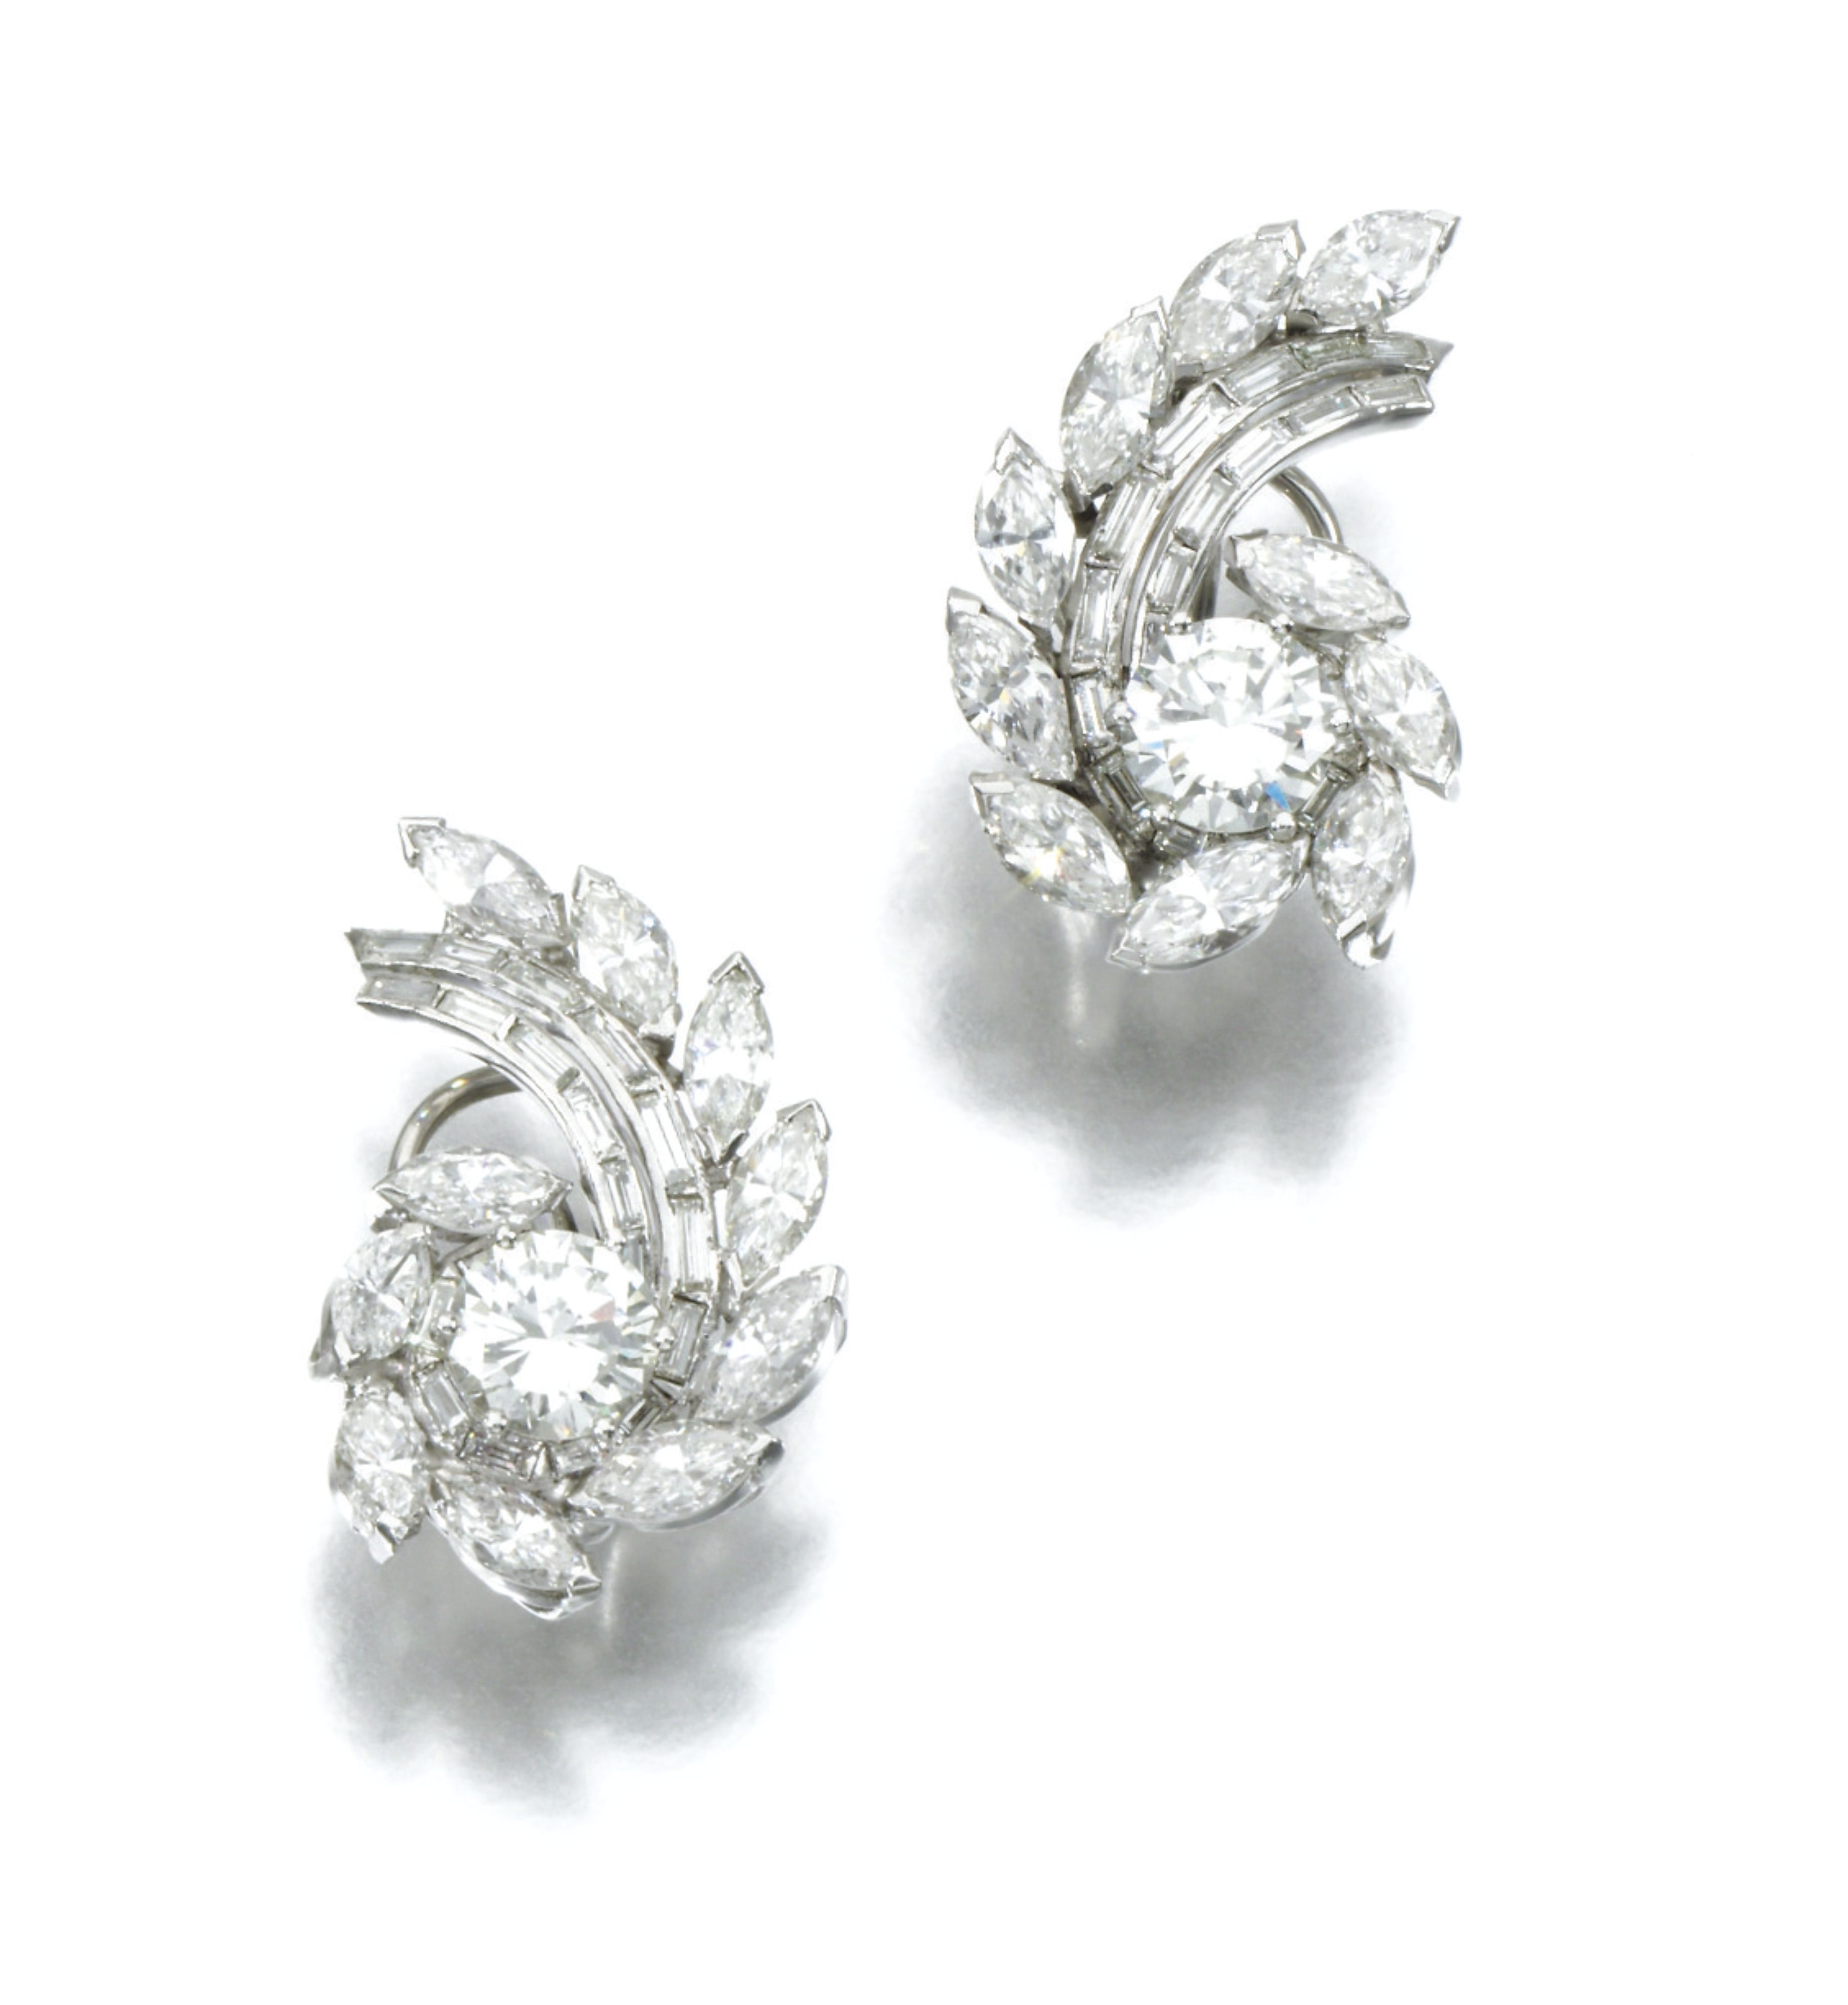 PAIR OF DIAMOND EARRINGS Each of swirl design set with marquise